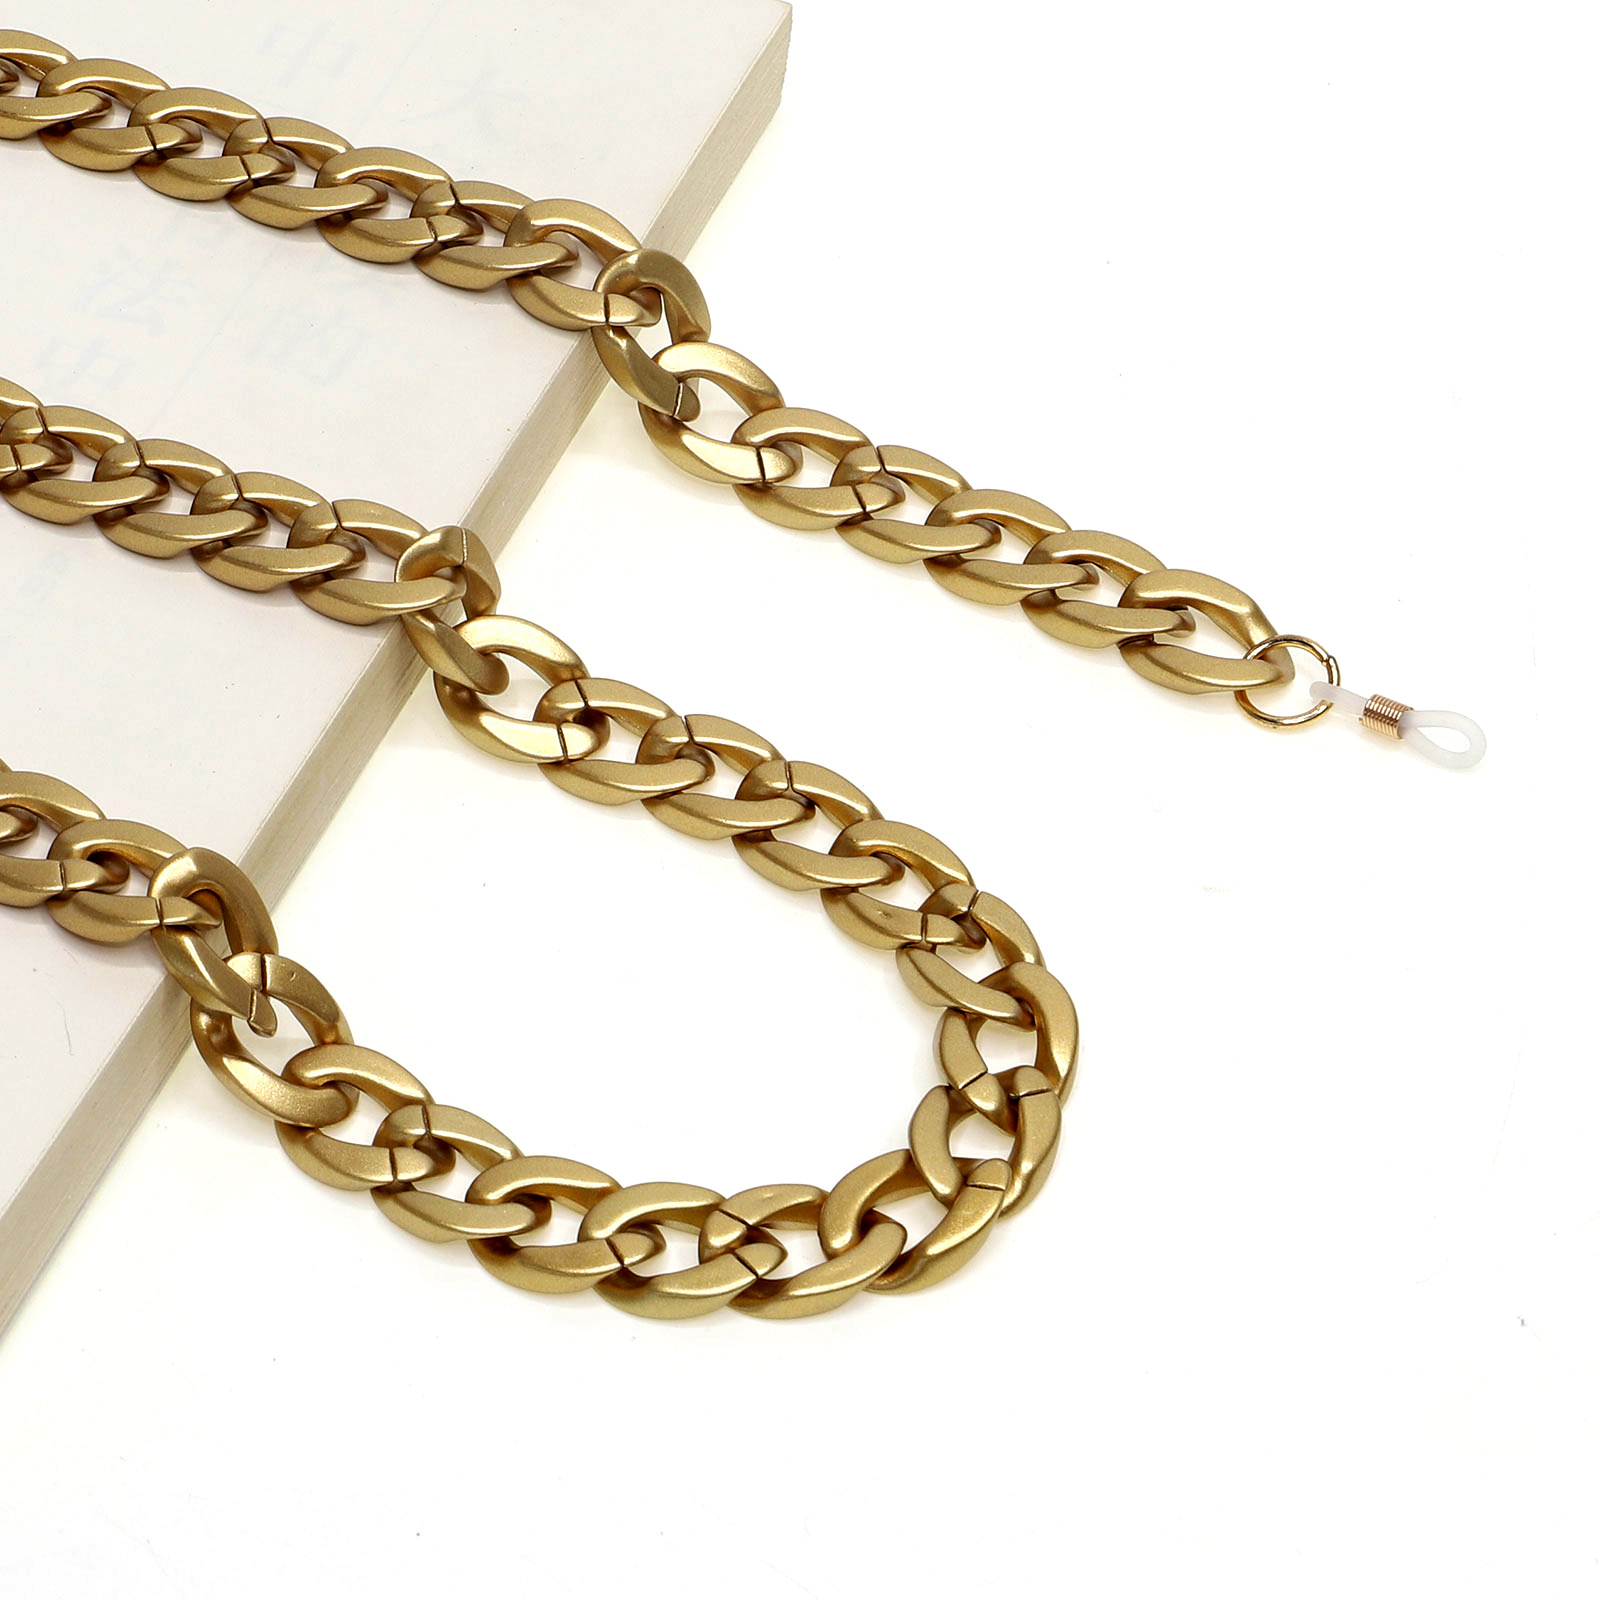 70CM Punk Gold Frosted Acrylic Reading Glasses Hanging Neck Chain Sunglasses Chain Eyeglasses Strap Woemn Glasses Accessories